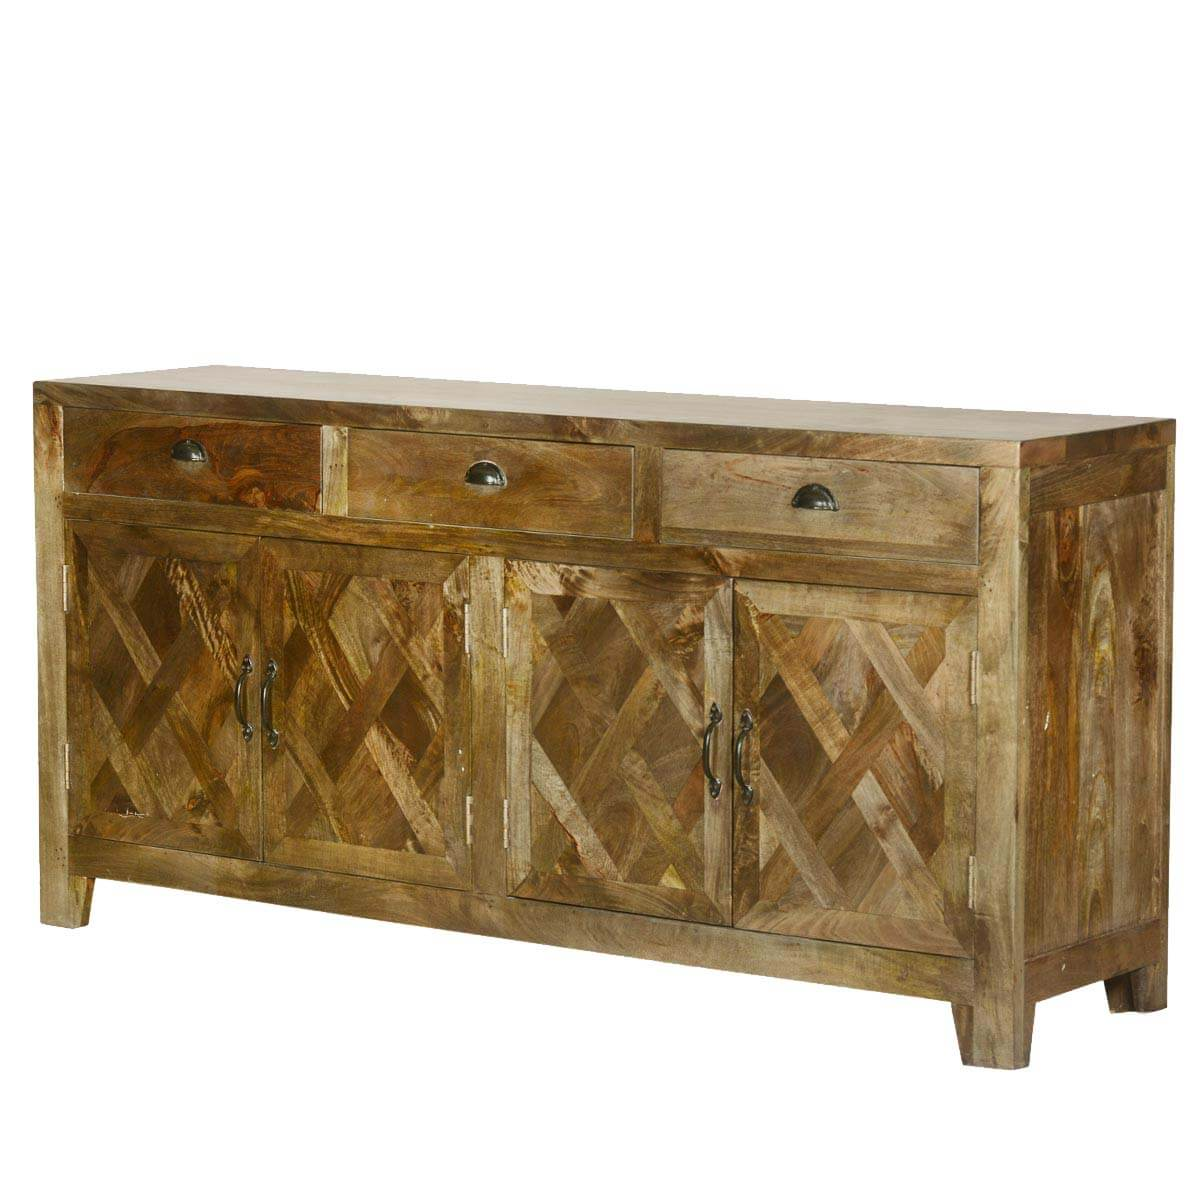 parquet farmhouse mango wood rustic sideboard buffet cabinet. Black Bedroom Furniture Sets. Home Design Ideas